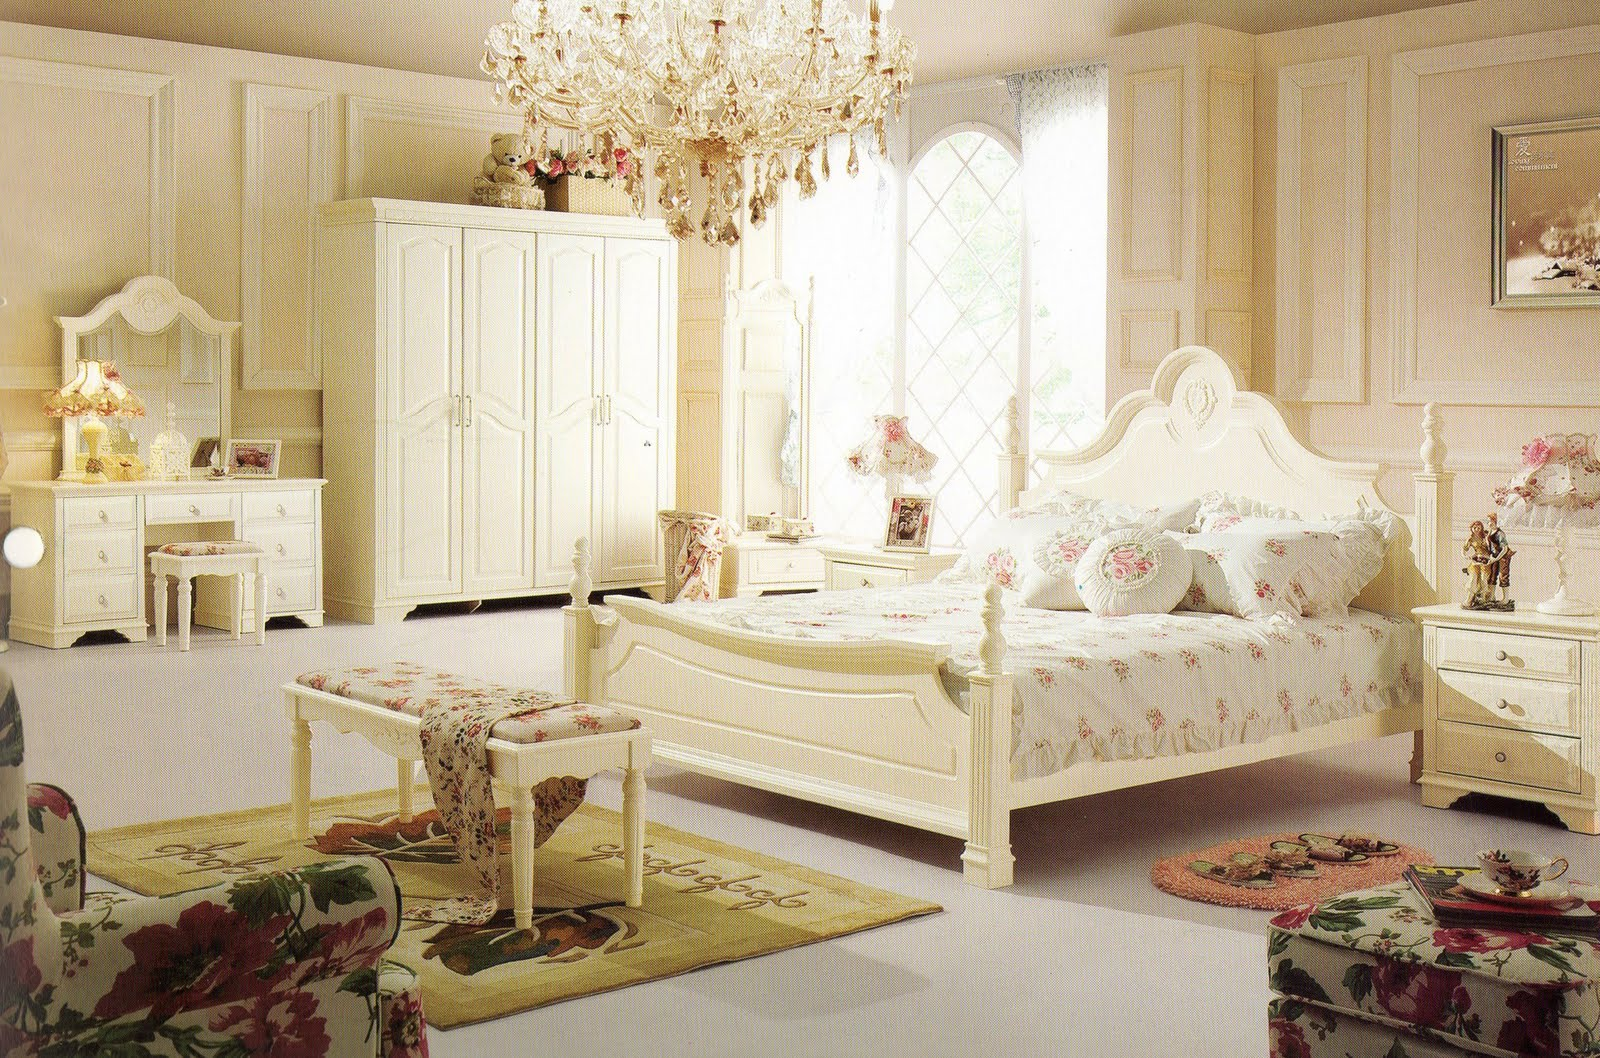 Fsd new arrival of our beautiful and elegant french style for A bedroom in french